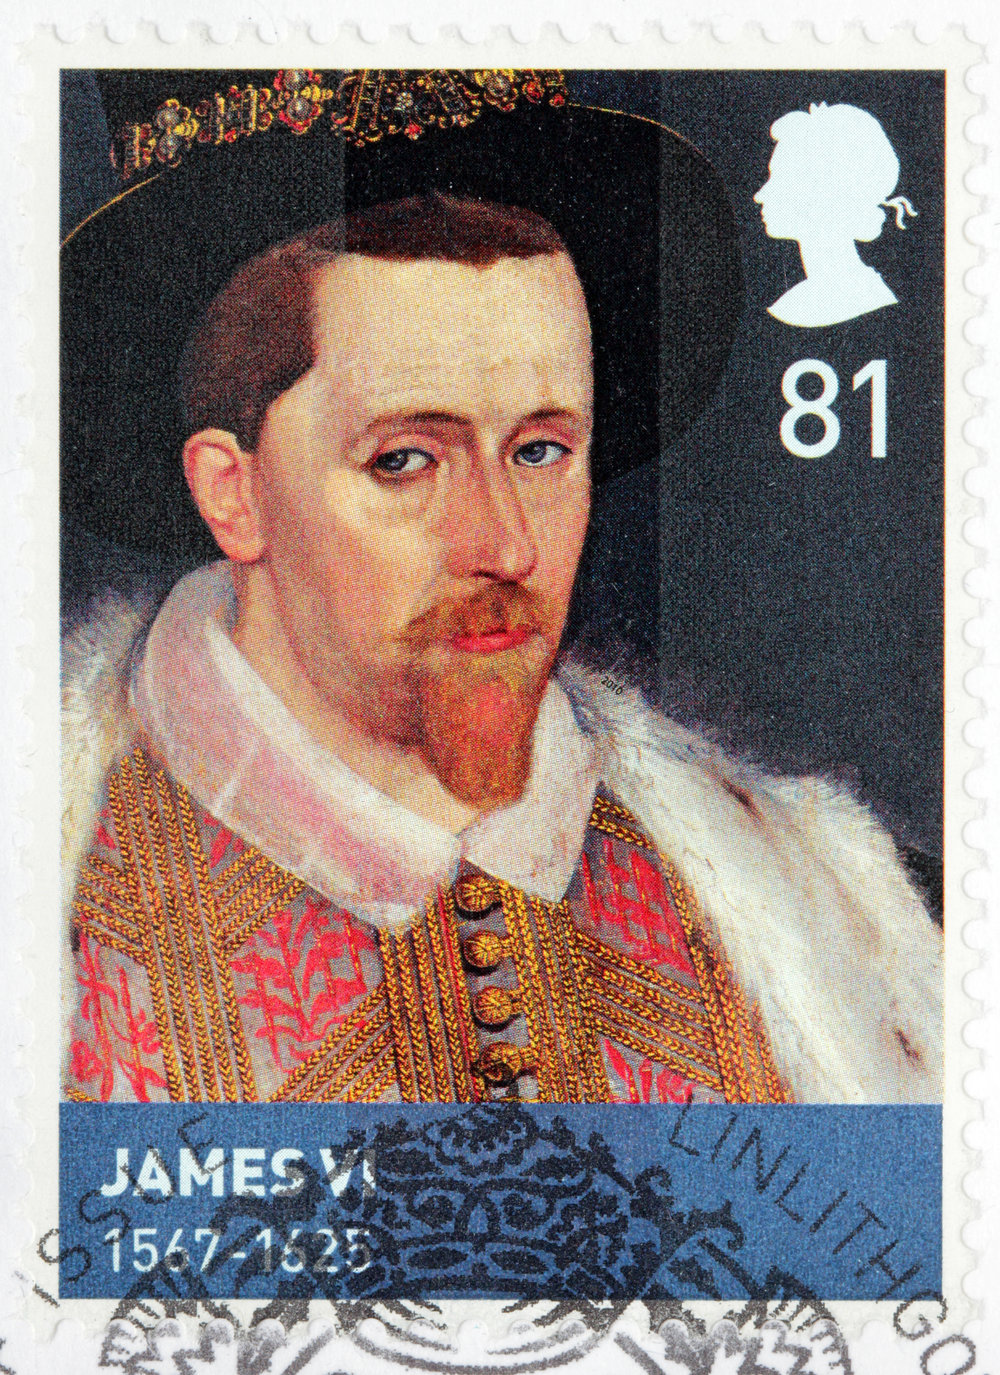 James VI was King of England when the Pilgrims left for the New World.